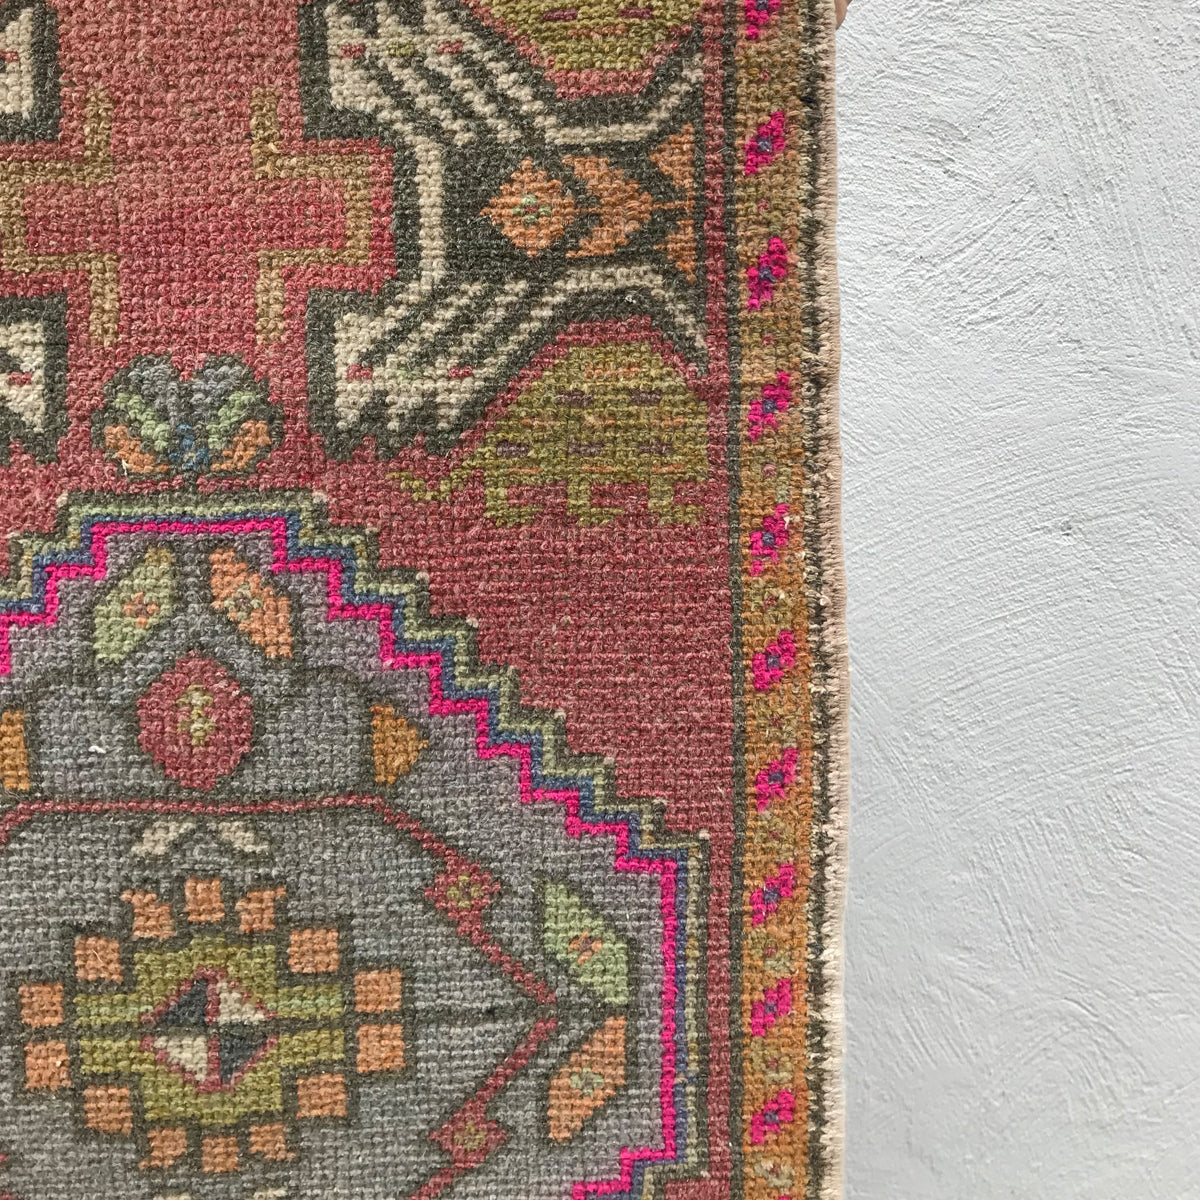 This small handwoven vintage Turkish rug has great colors including peach and pink. Great for entryways, bathrooms, kitchens and layering. 19x37 inches.